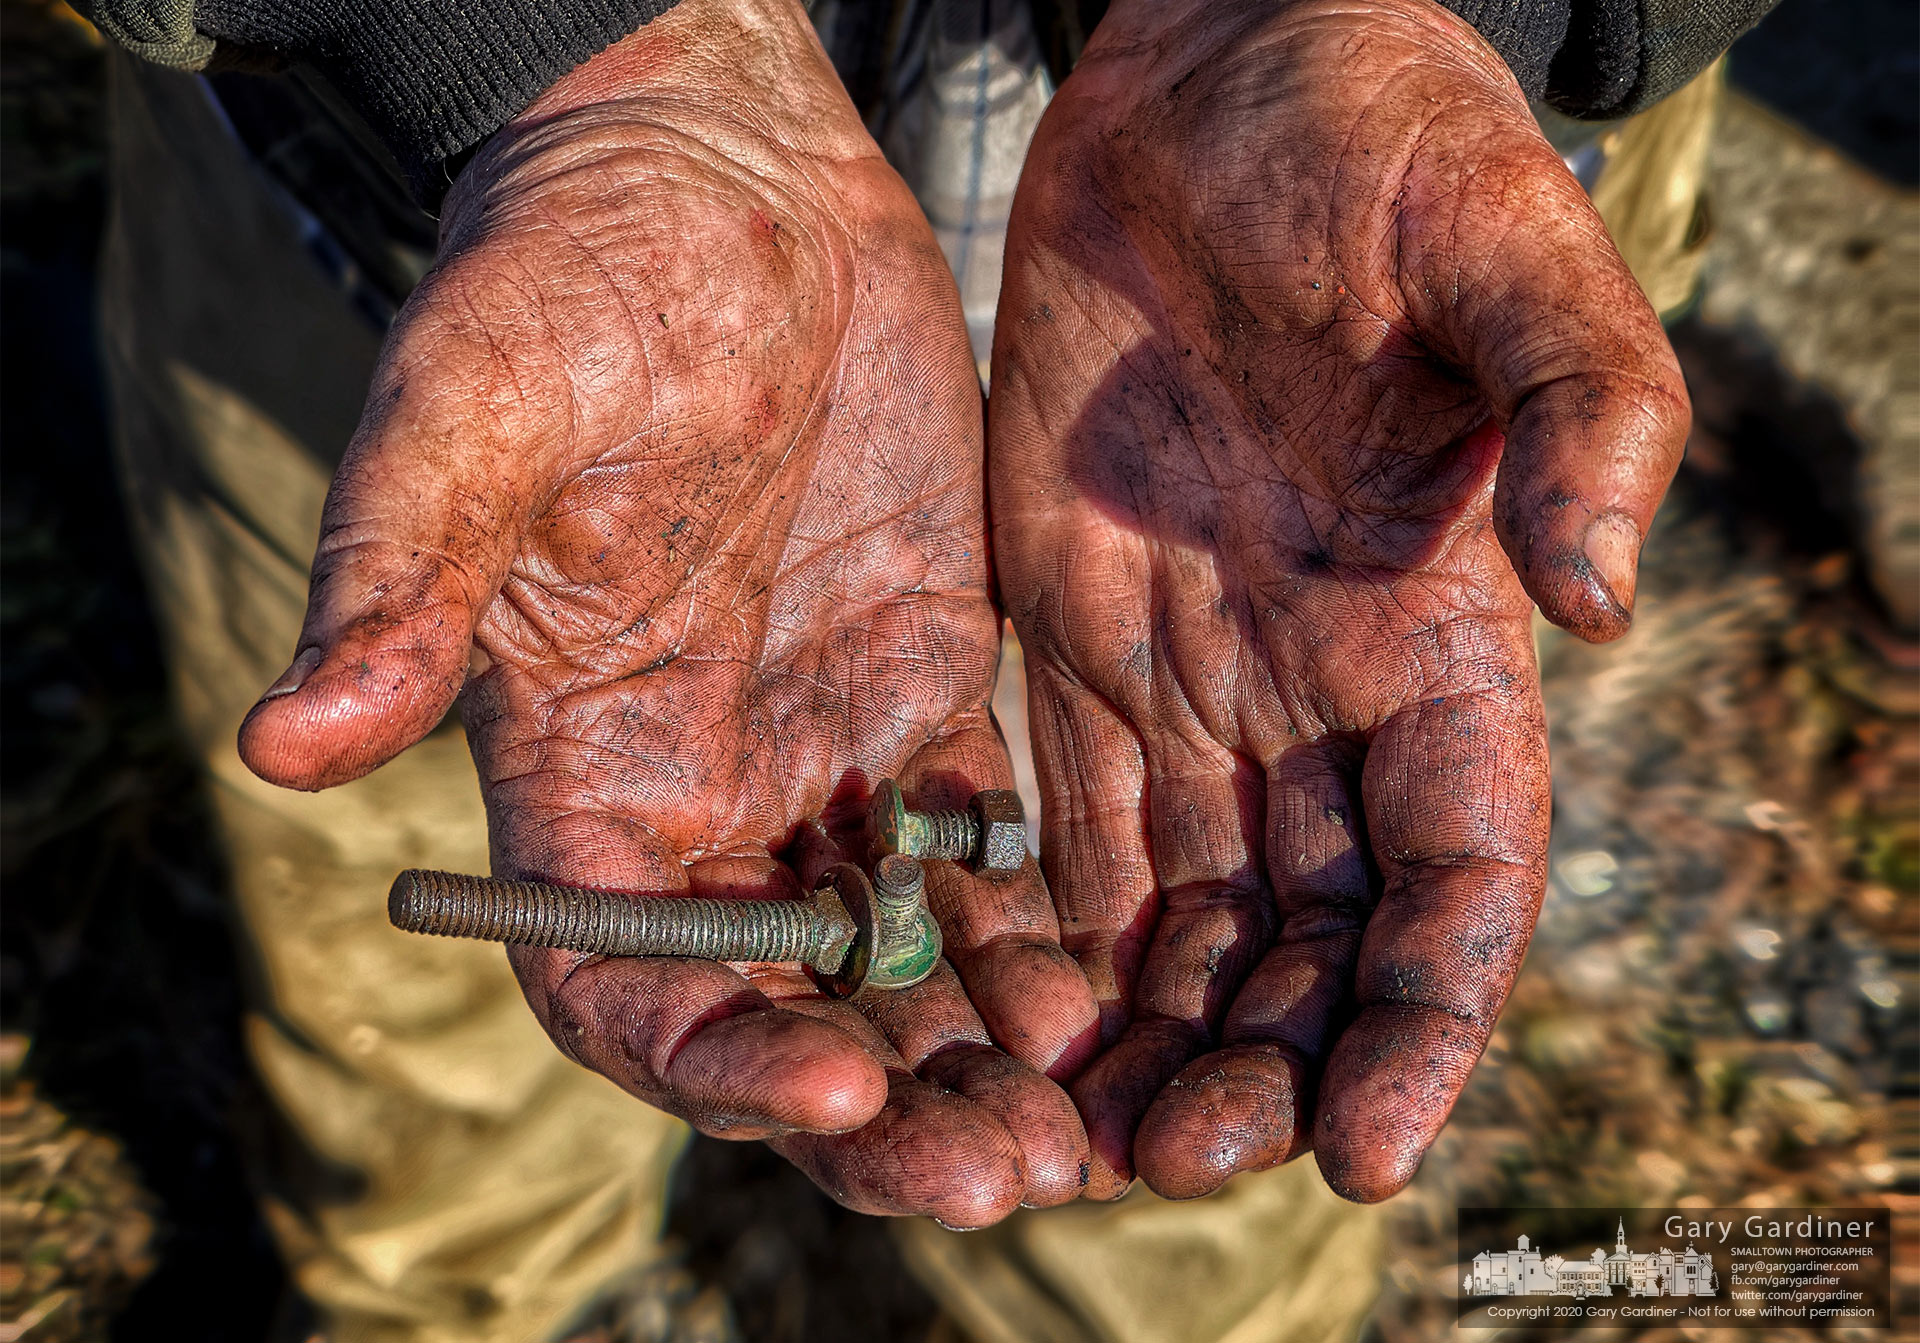 A farmer's hand bearing dirt and grease holds carriage bolts and nuts needed to repair a corn picker after it broke harvesting corn on the Braun Farm. My Final Photo for Jan. 21, 2021.